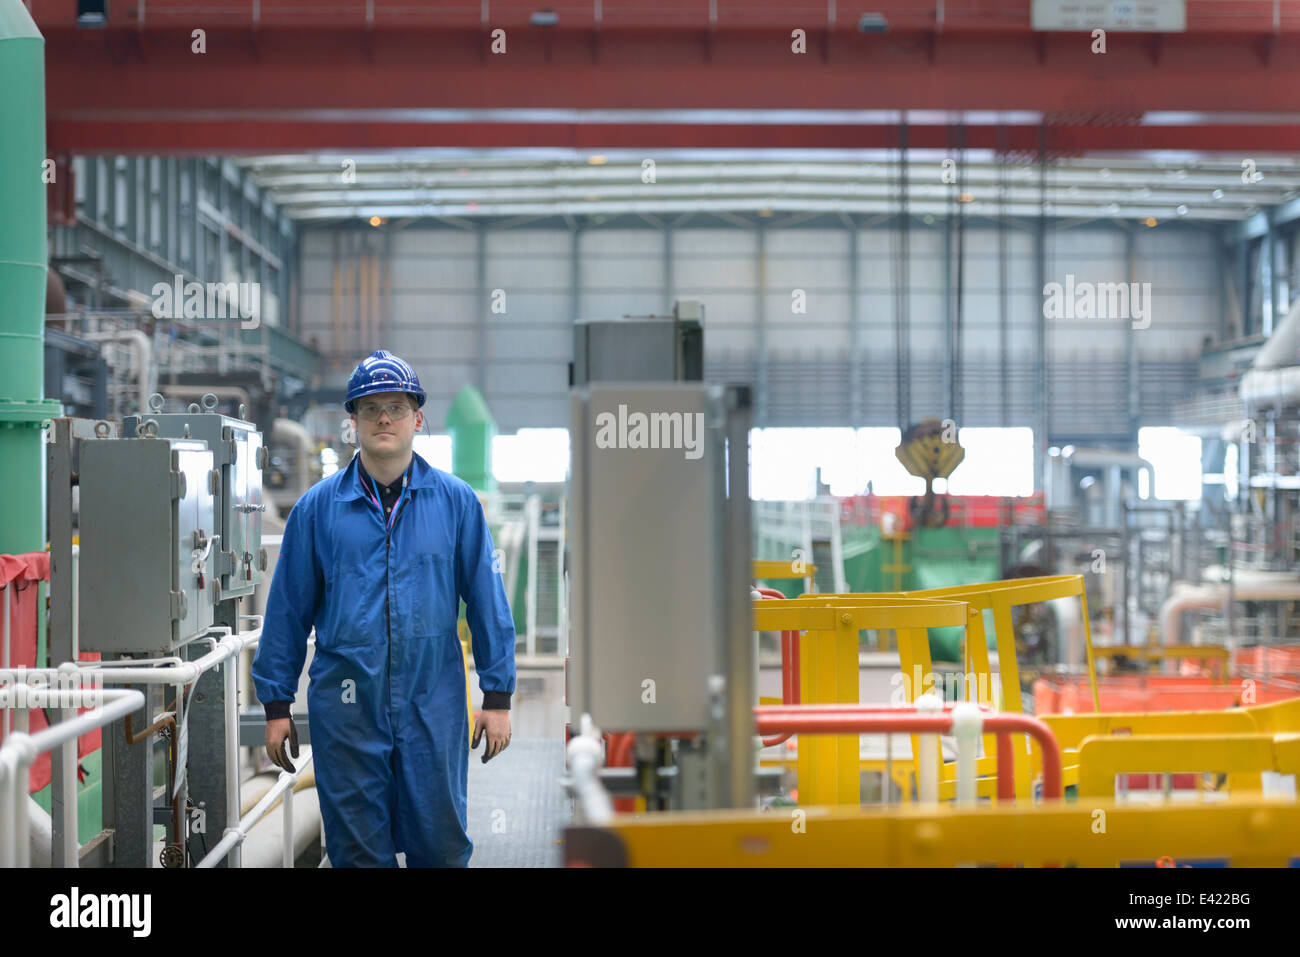 Engineer on walkway during power station outage - Stock Image